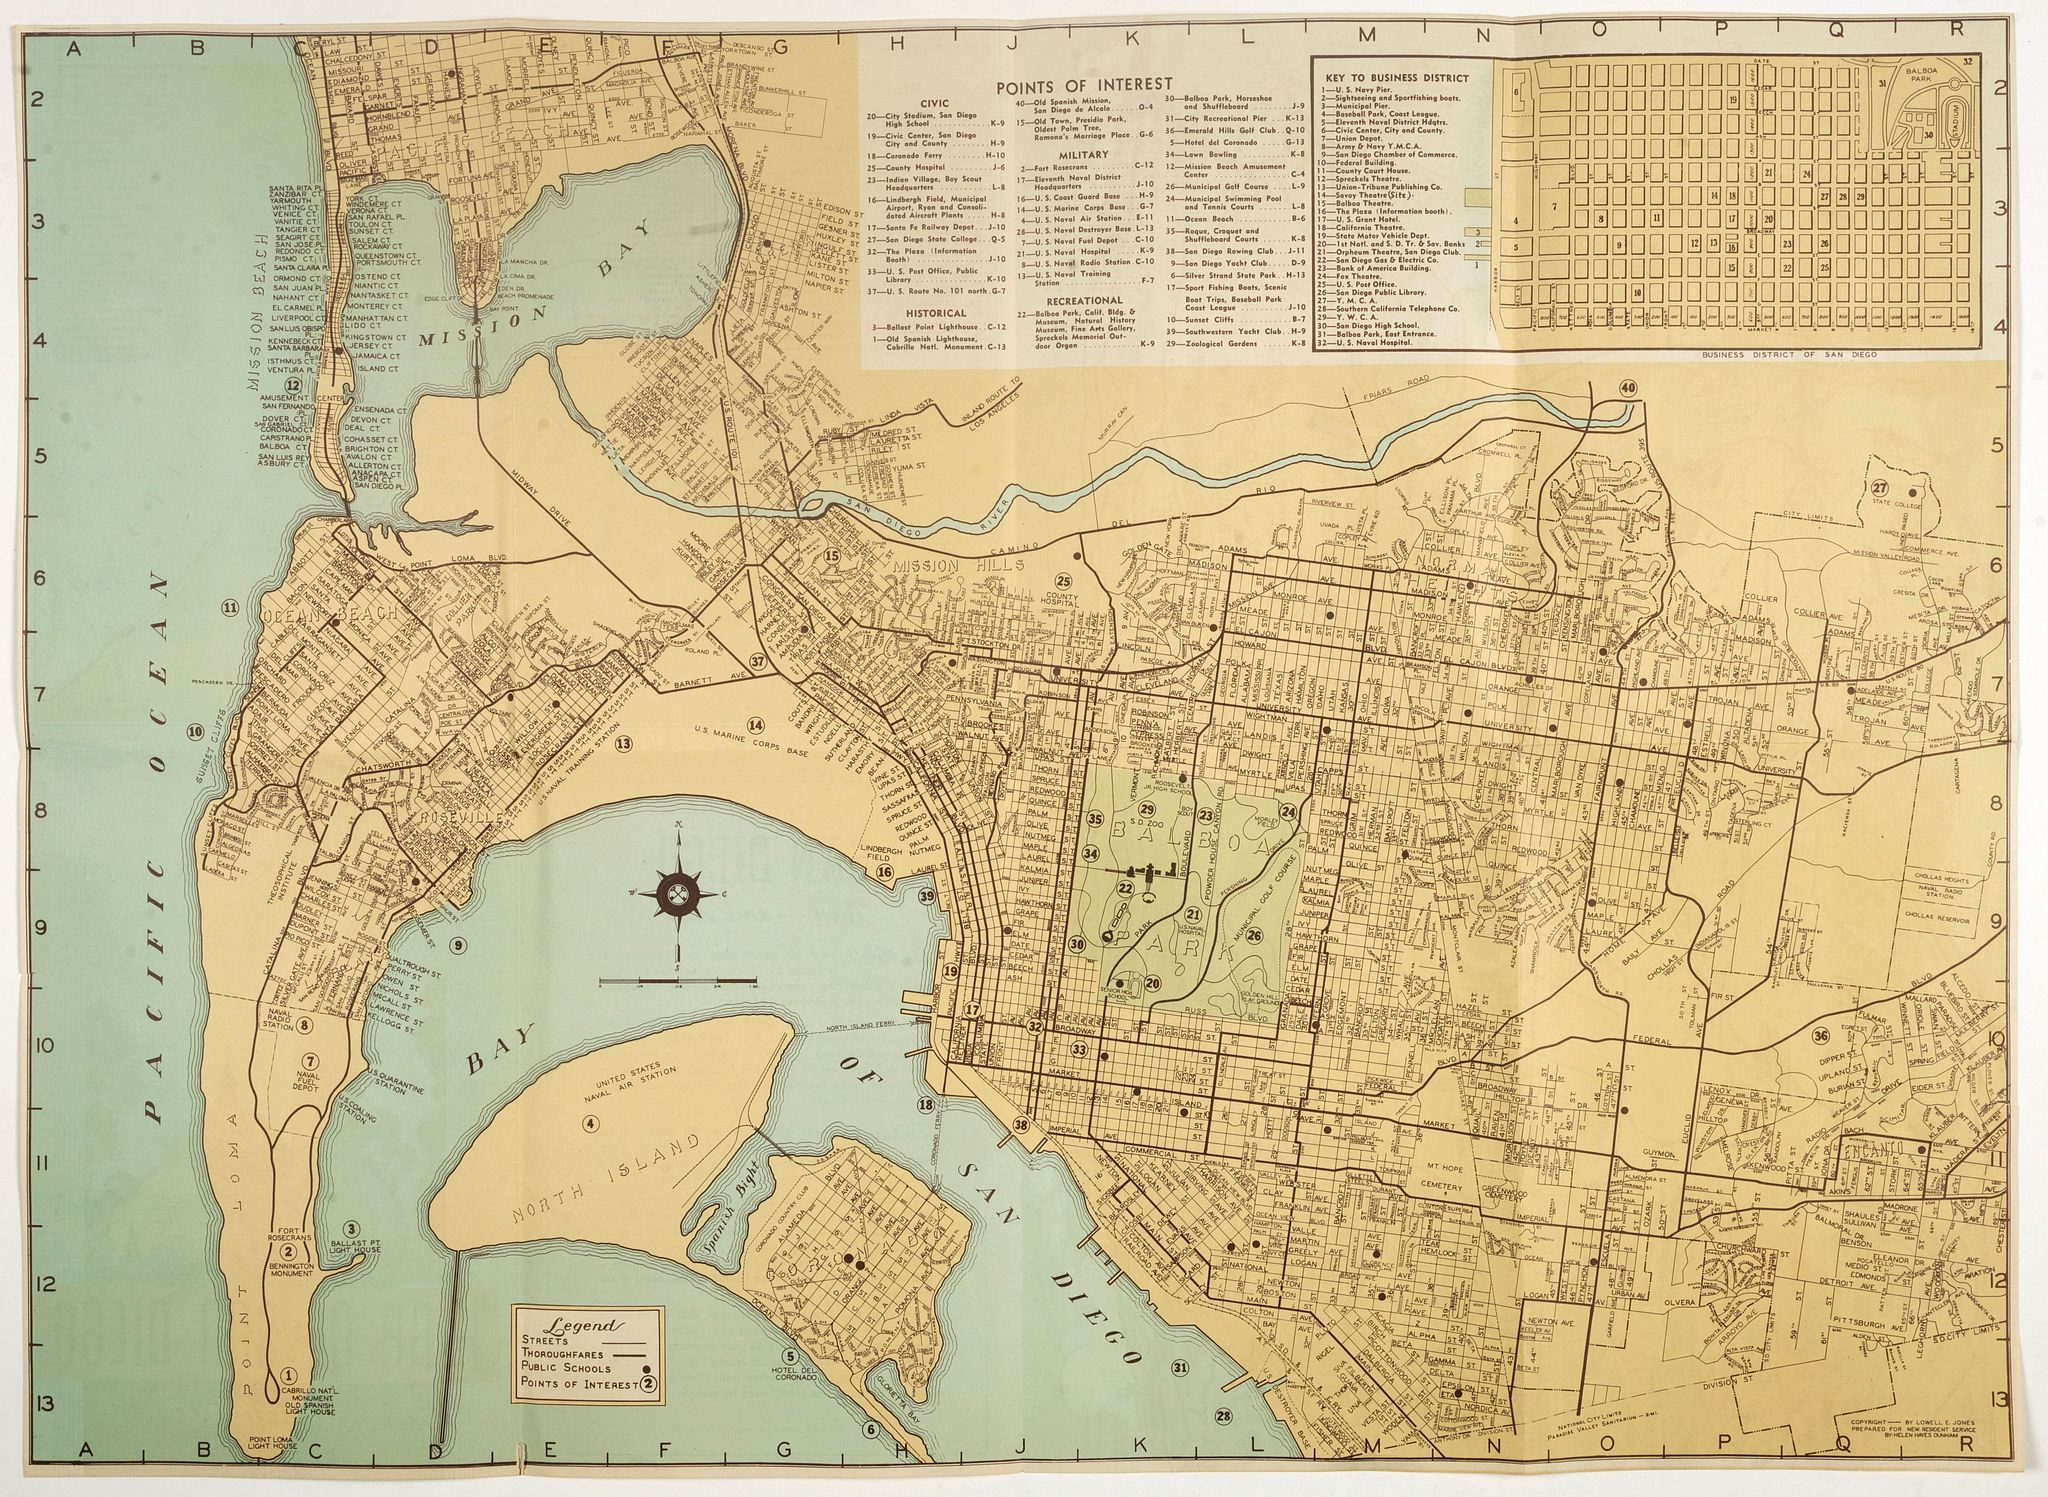 JONES - Map of San Diego California City and County.